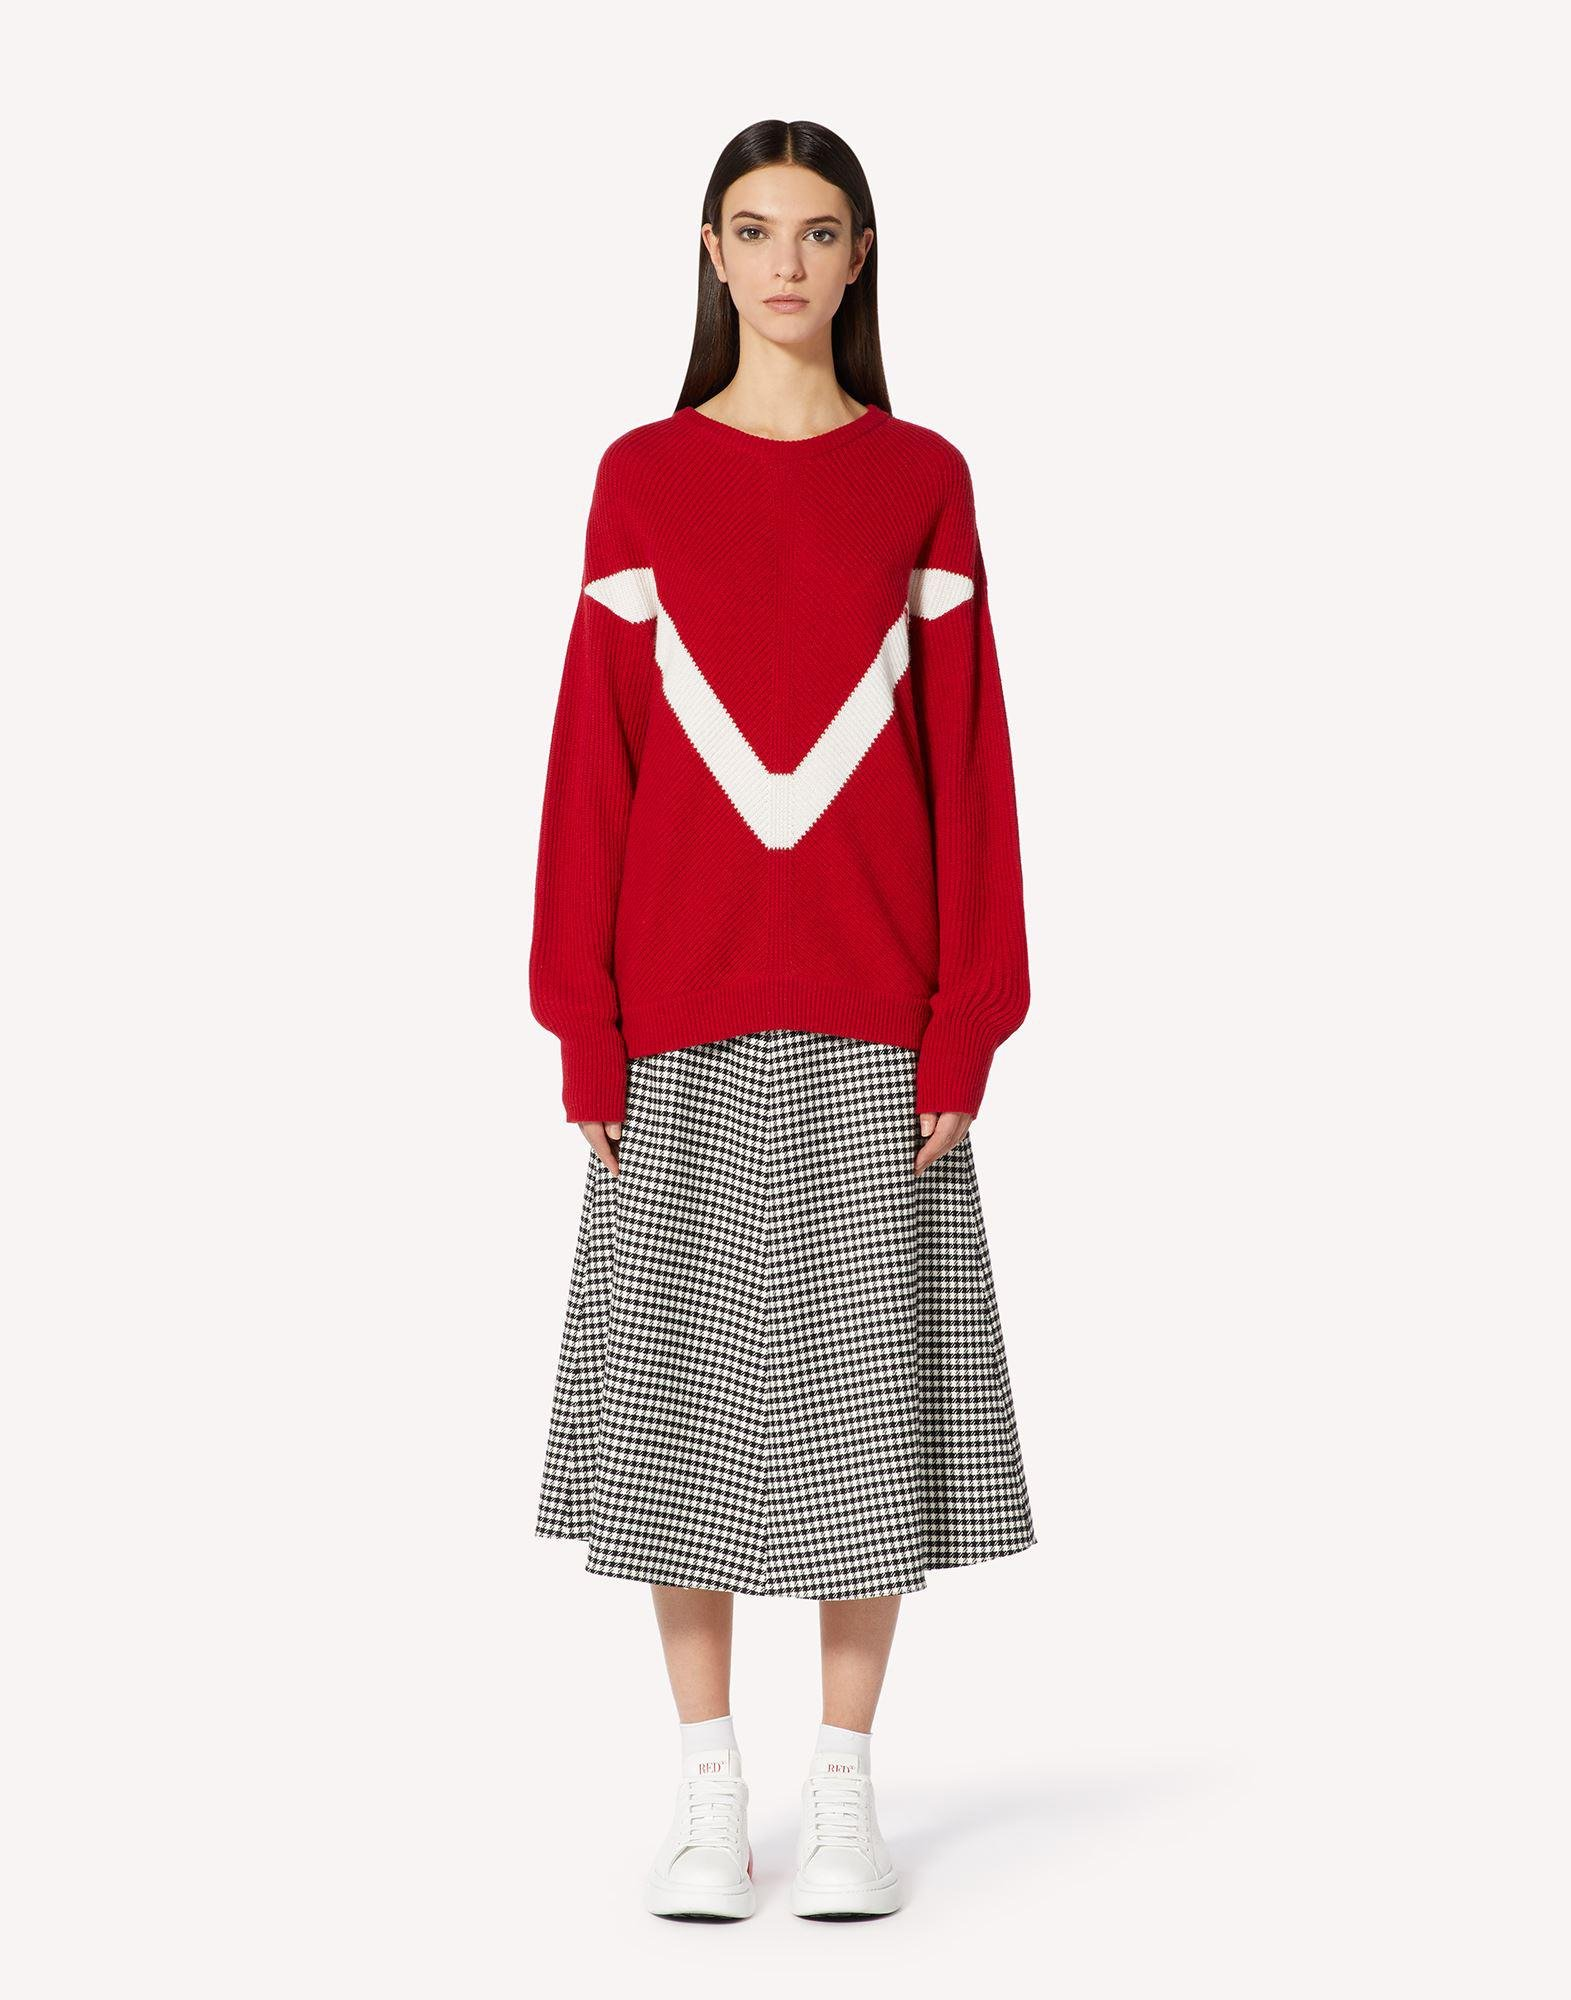 RED EMBROIDERED WOOL-BLEND SWEATER